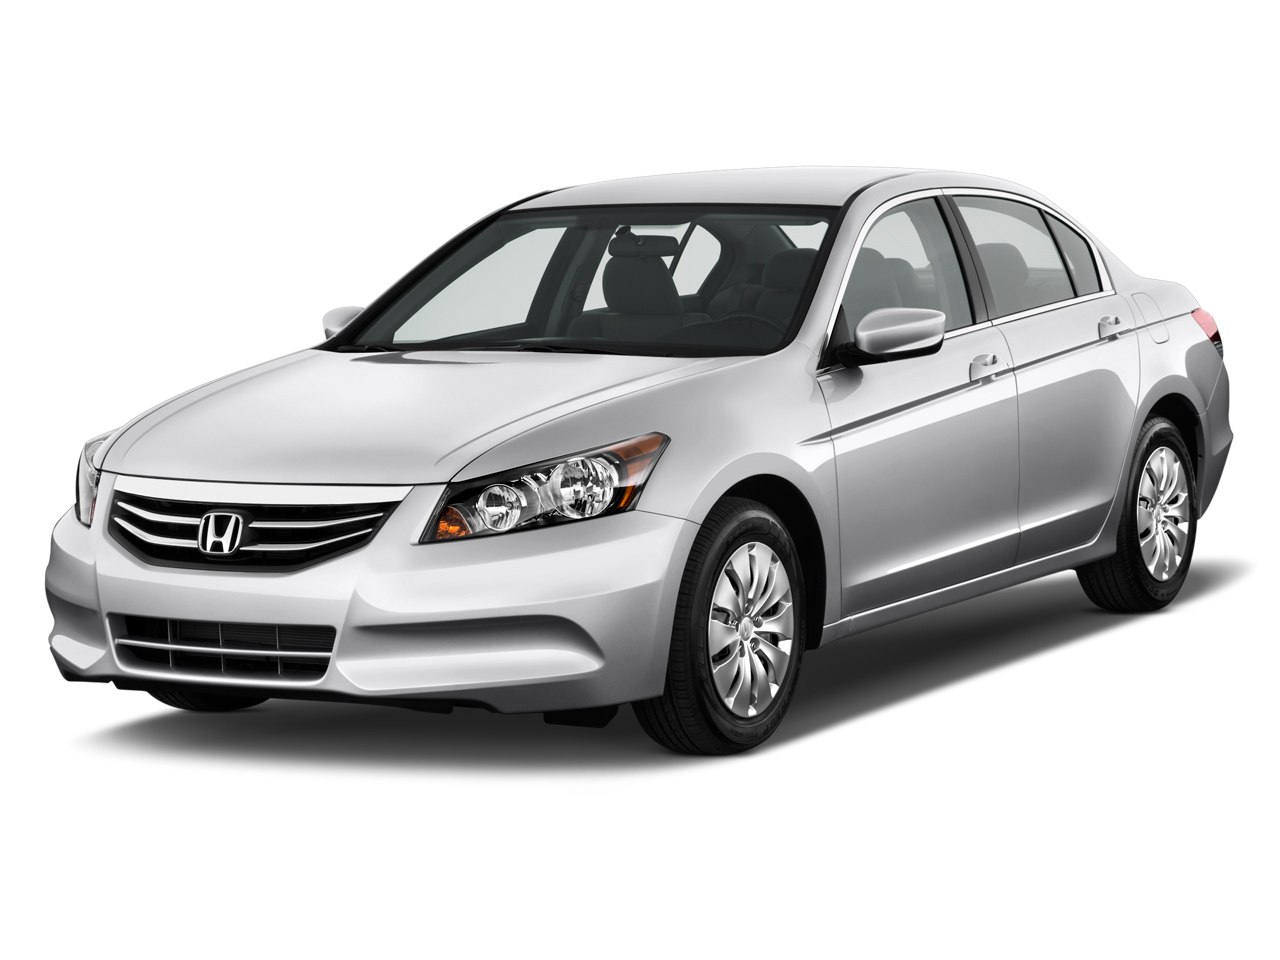 2011 Honda Accord Sedan Review Ratings Specs Prices